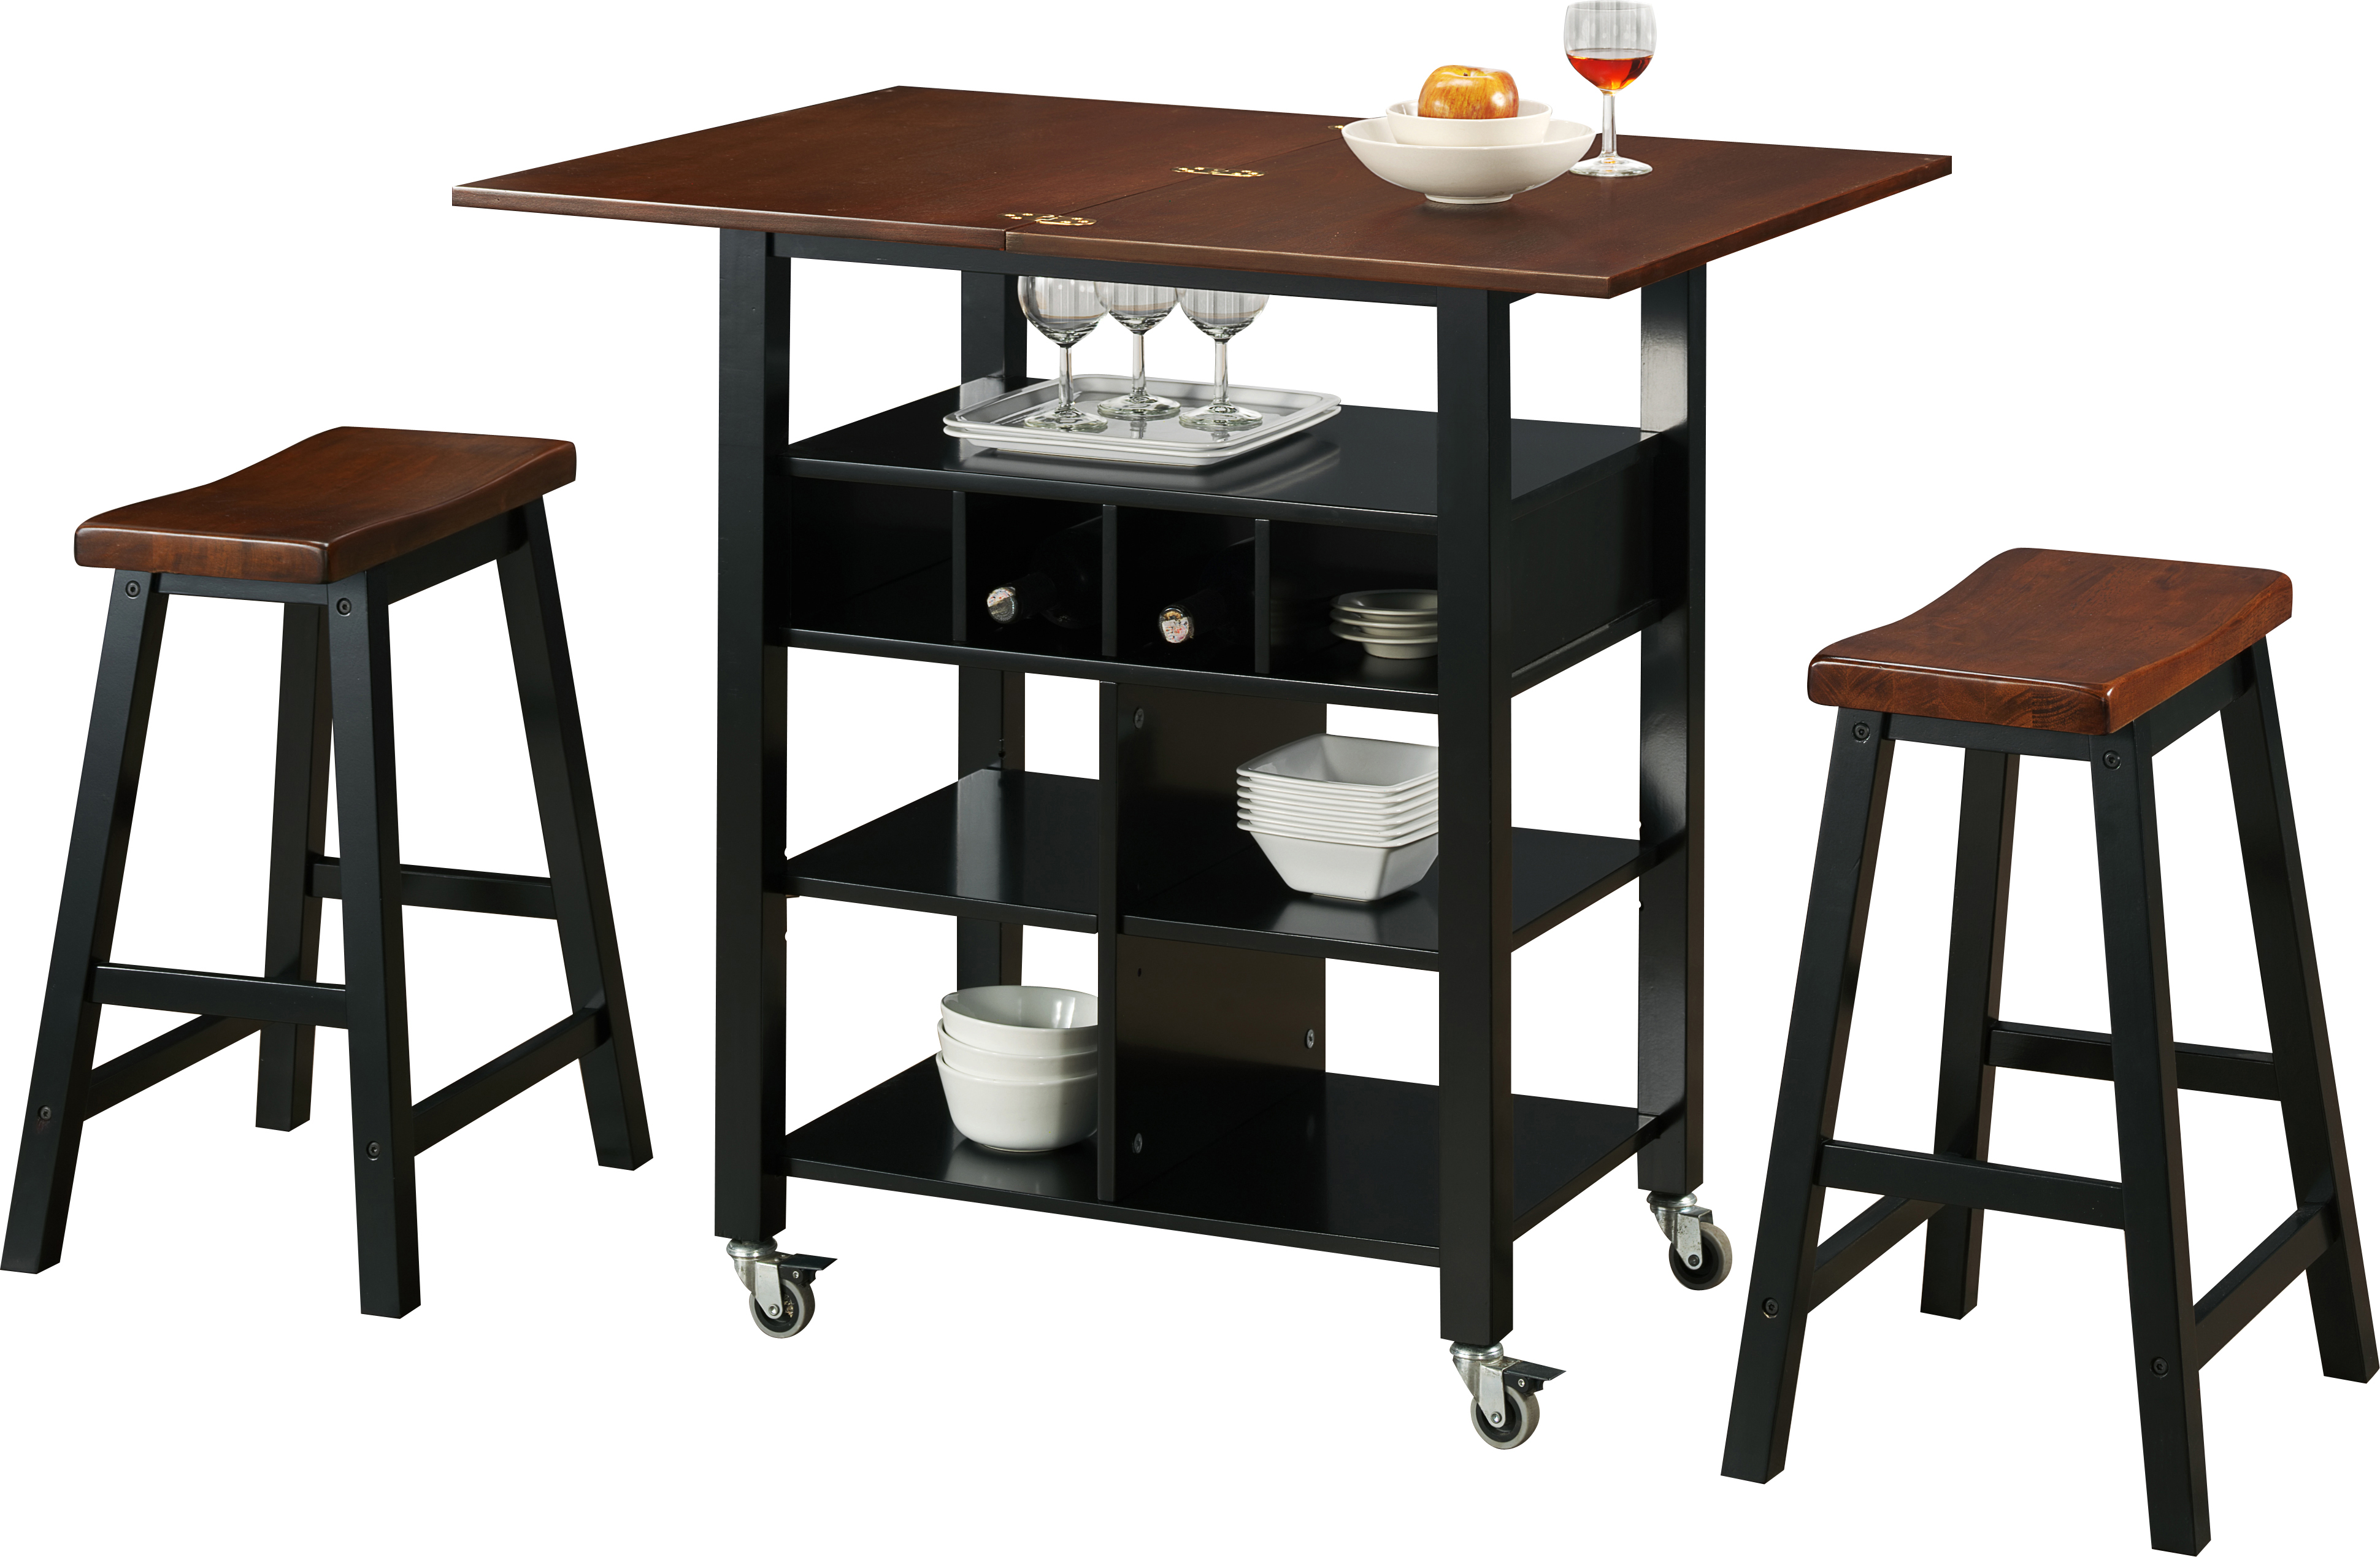 Kitchen Island Cart With Stools phoenix kitchen island with 2 stools